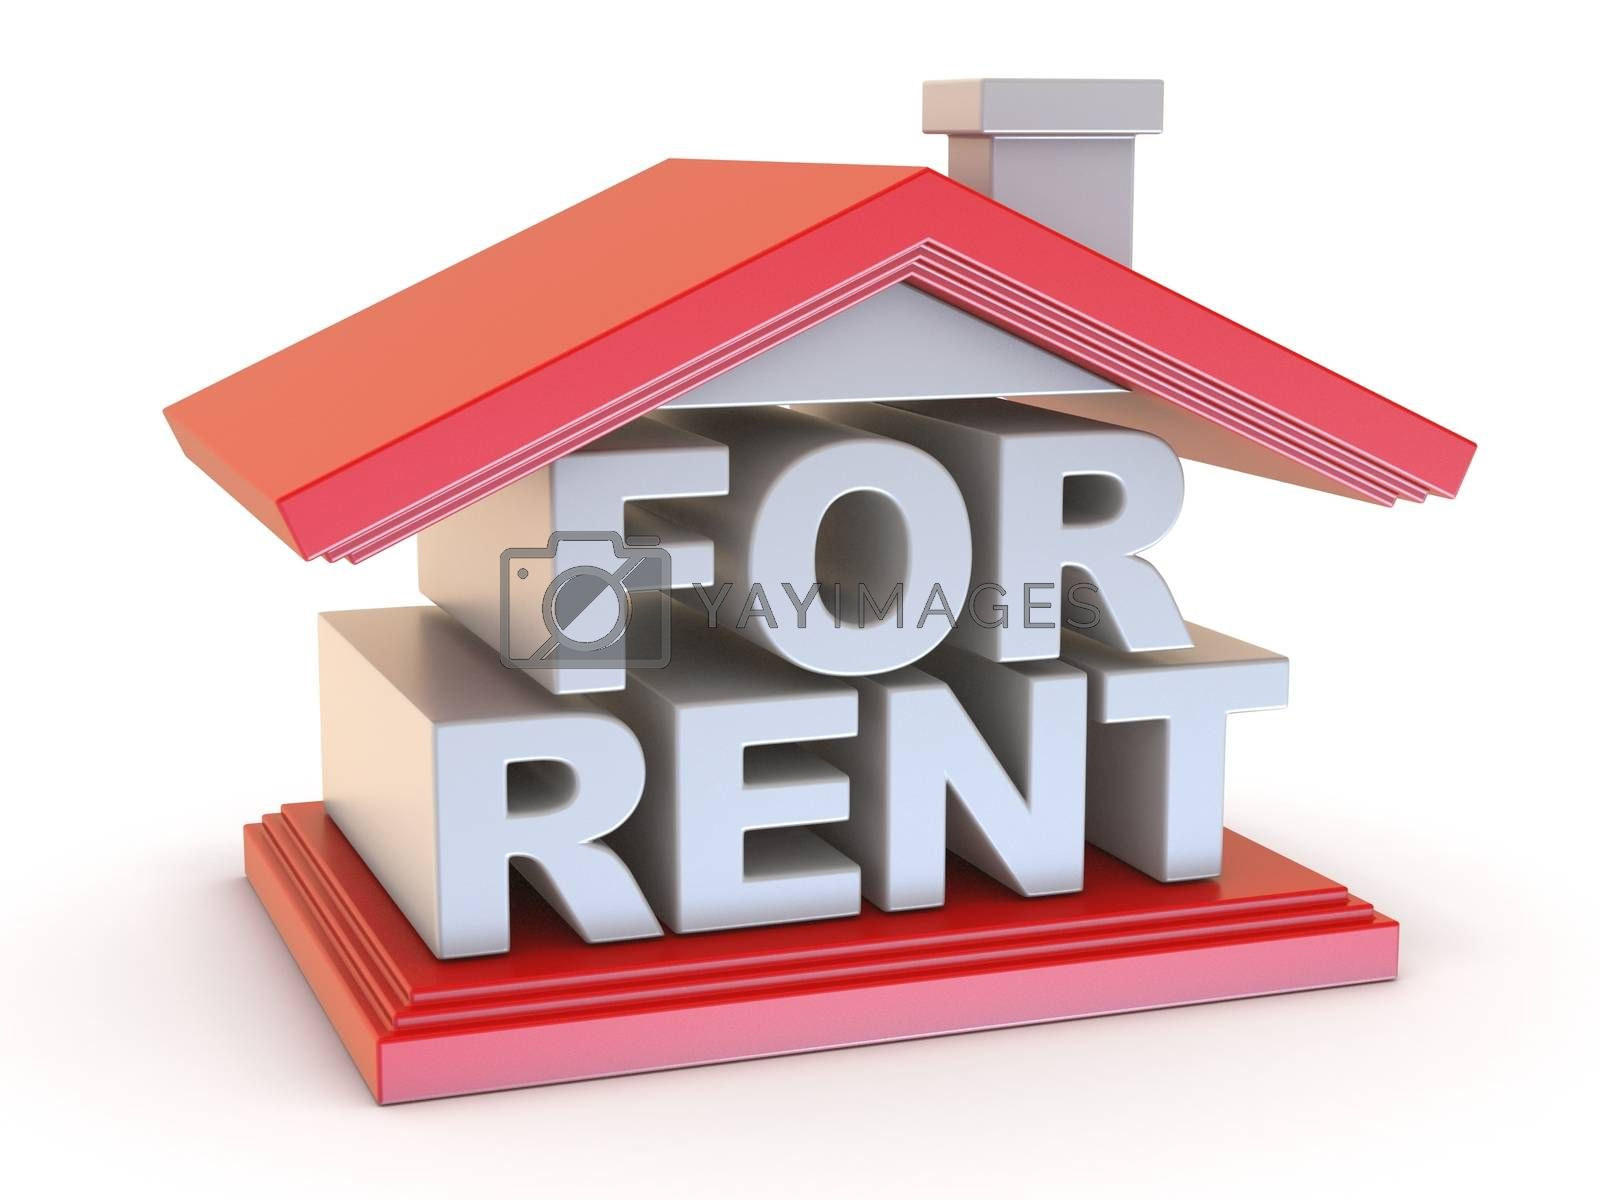 FOR RENT house sign side view 3D by djmilic